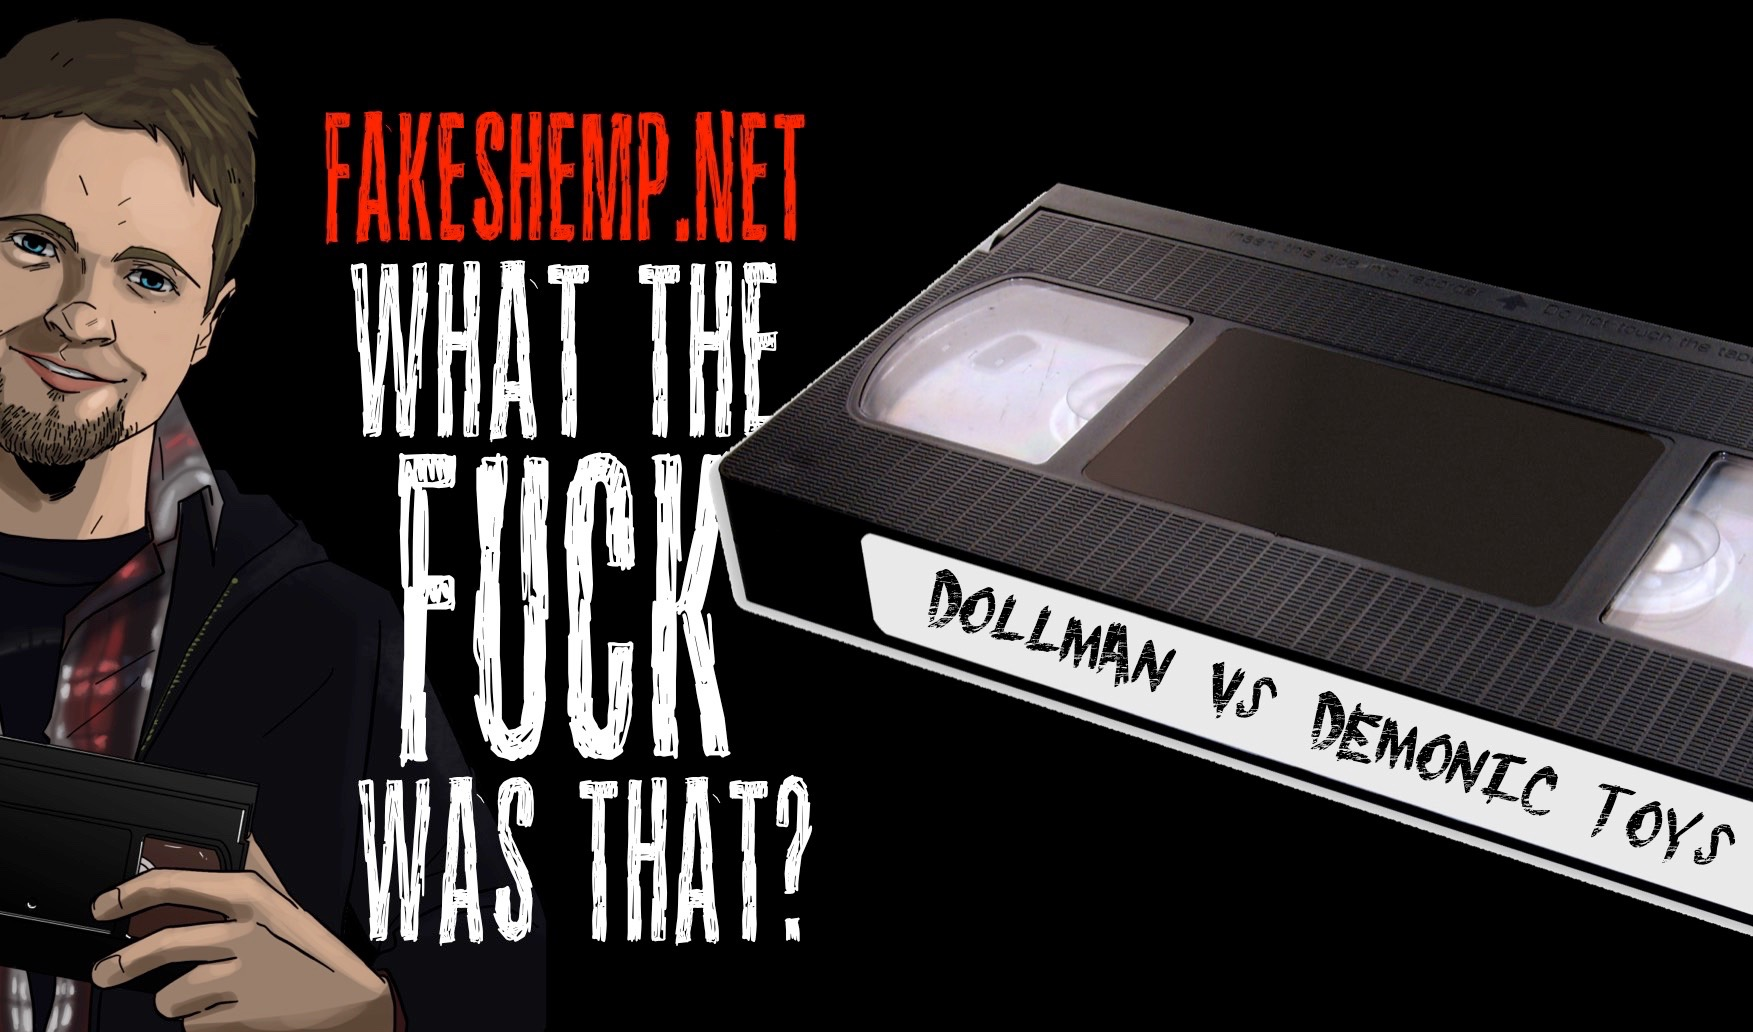 WTF WAS THAT? - Dollman VS Demonic Toys